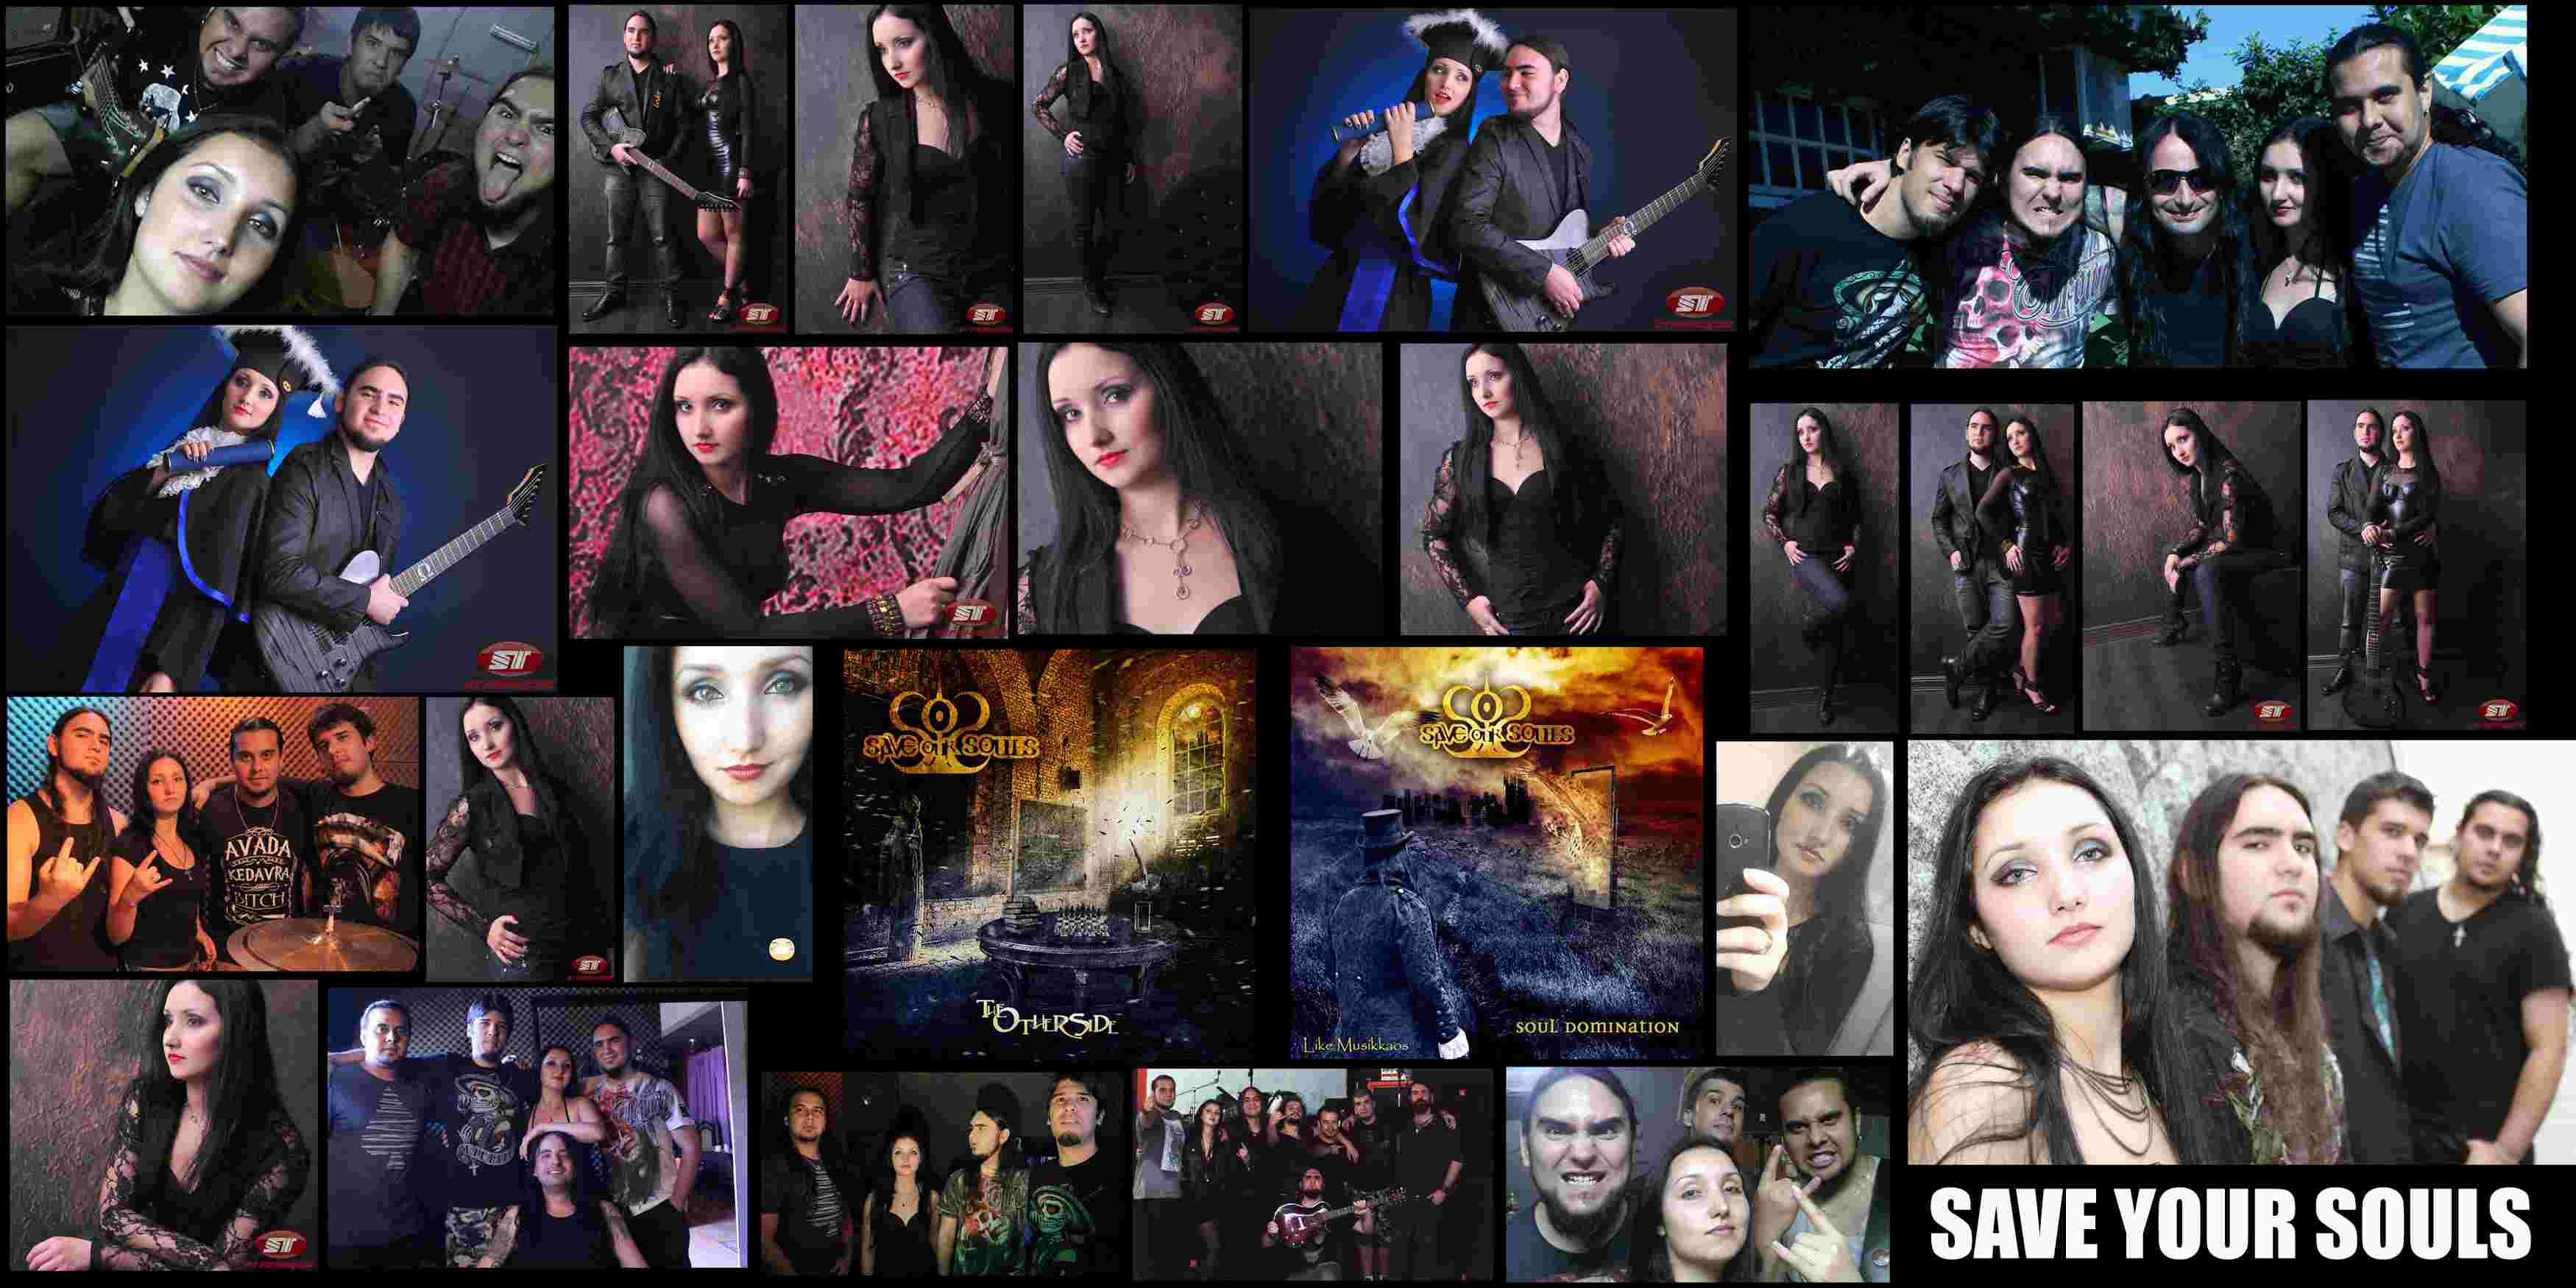 Mes petits montages photos ... - Page 8 Save_y10